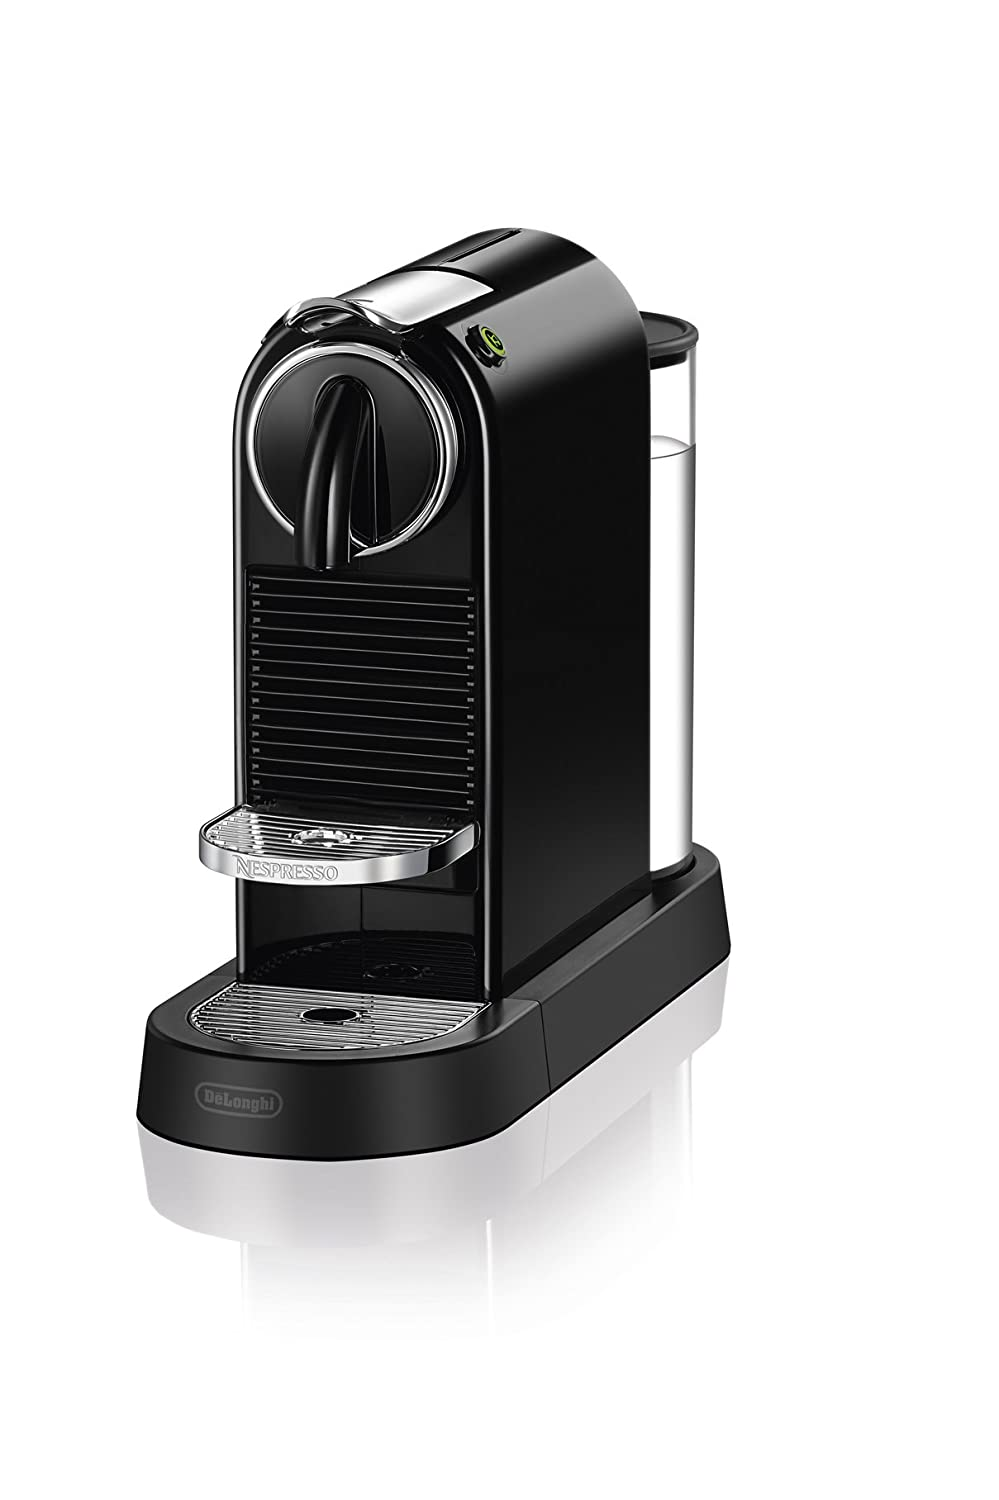 Nespresso by De Longhi EN167B Original Espresso Machine by De Longhi, 2.3, Black